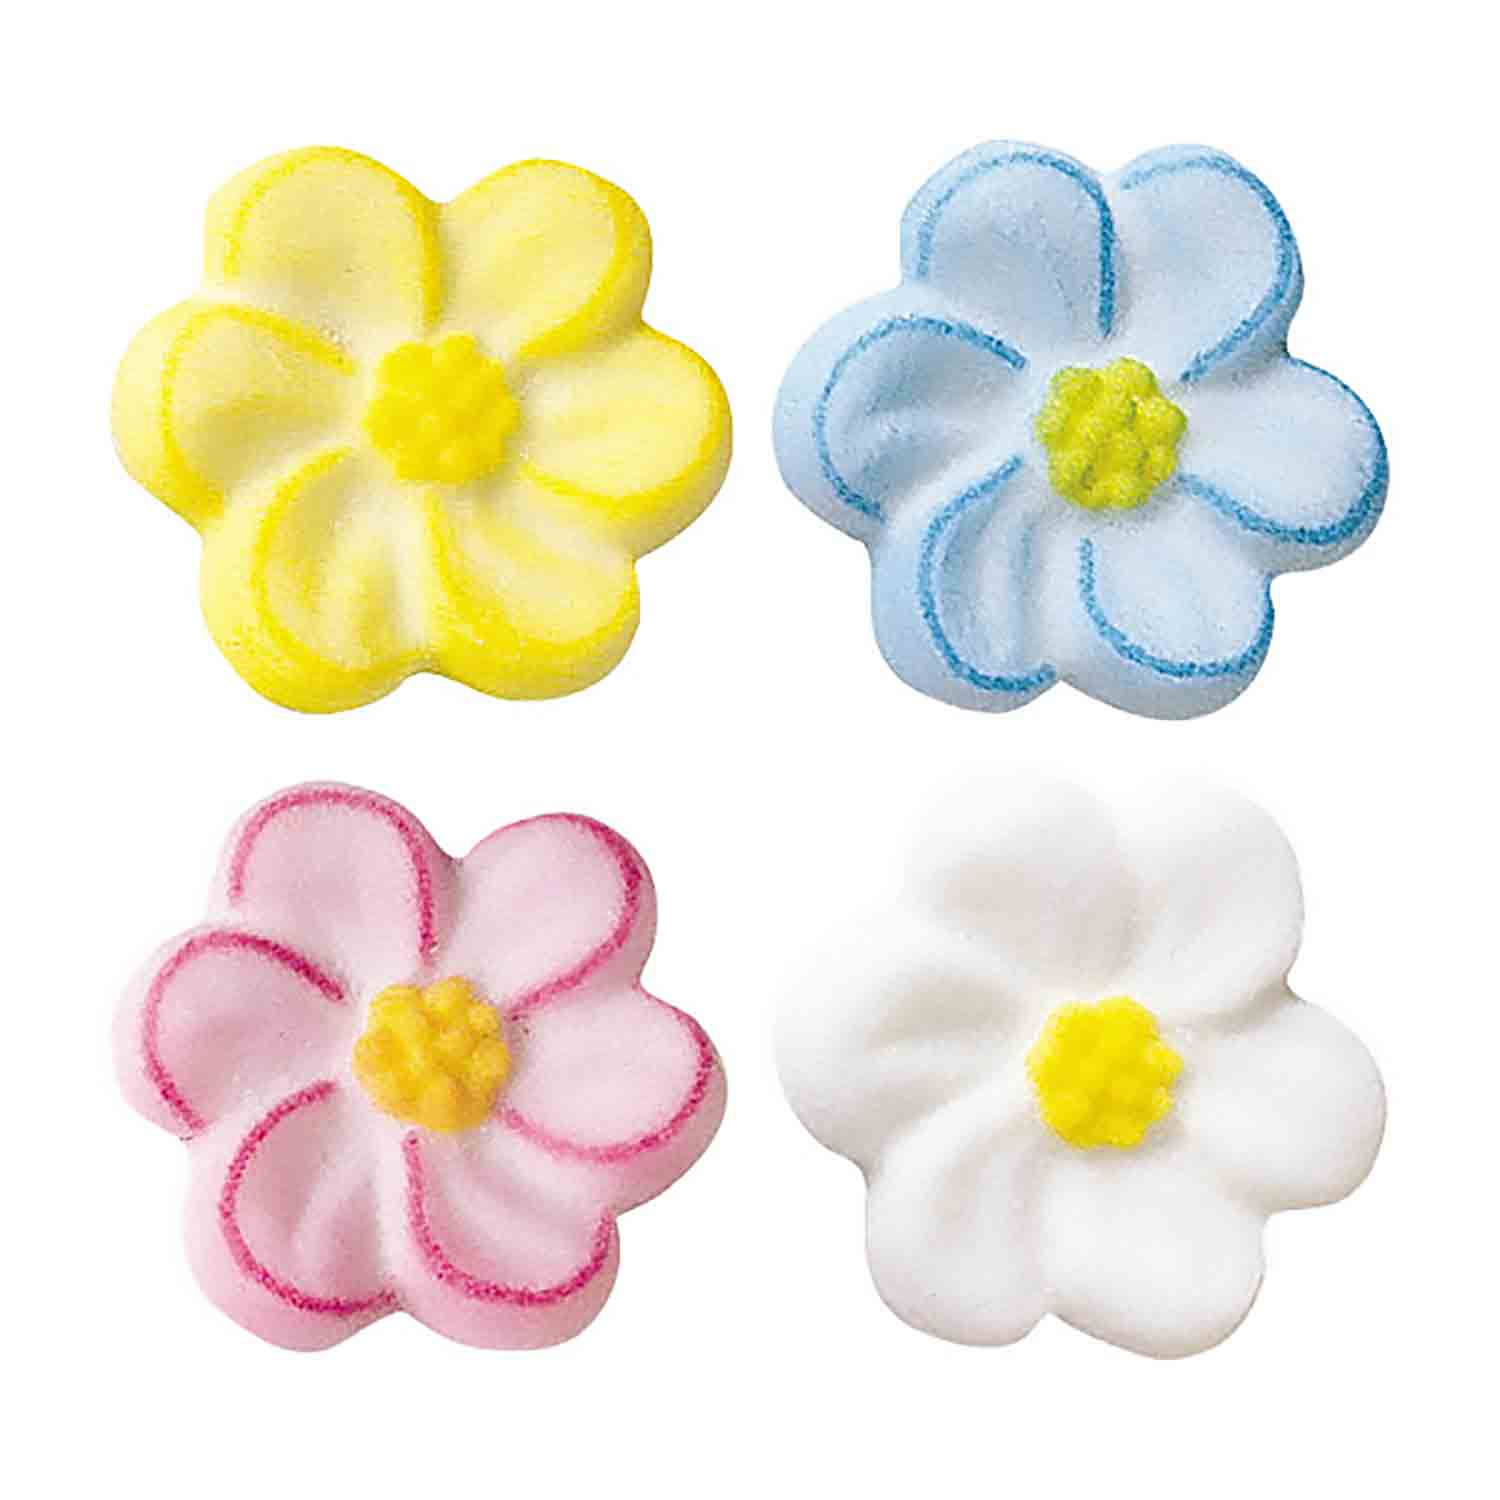 Dec-Ons® Molded Sugar - Blossom Assortment